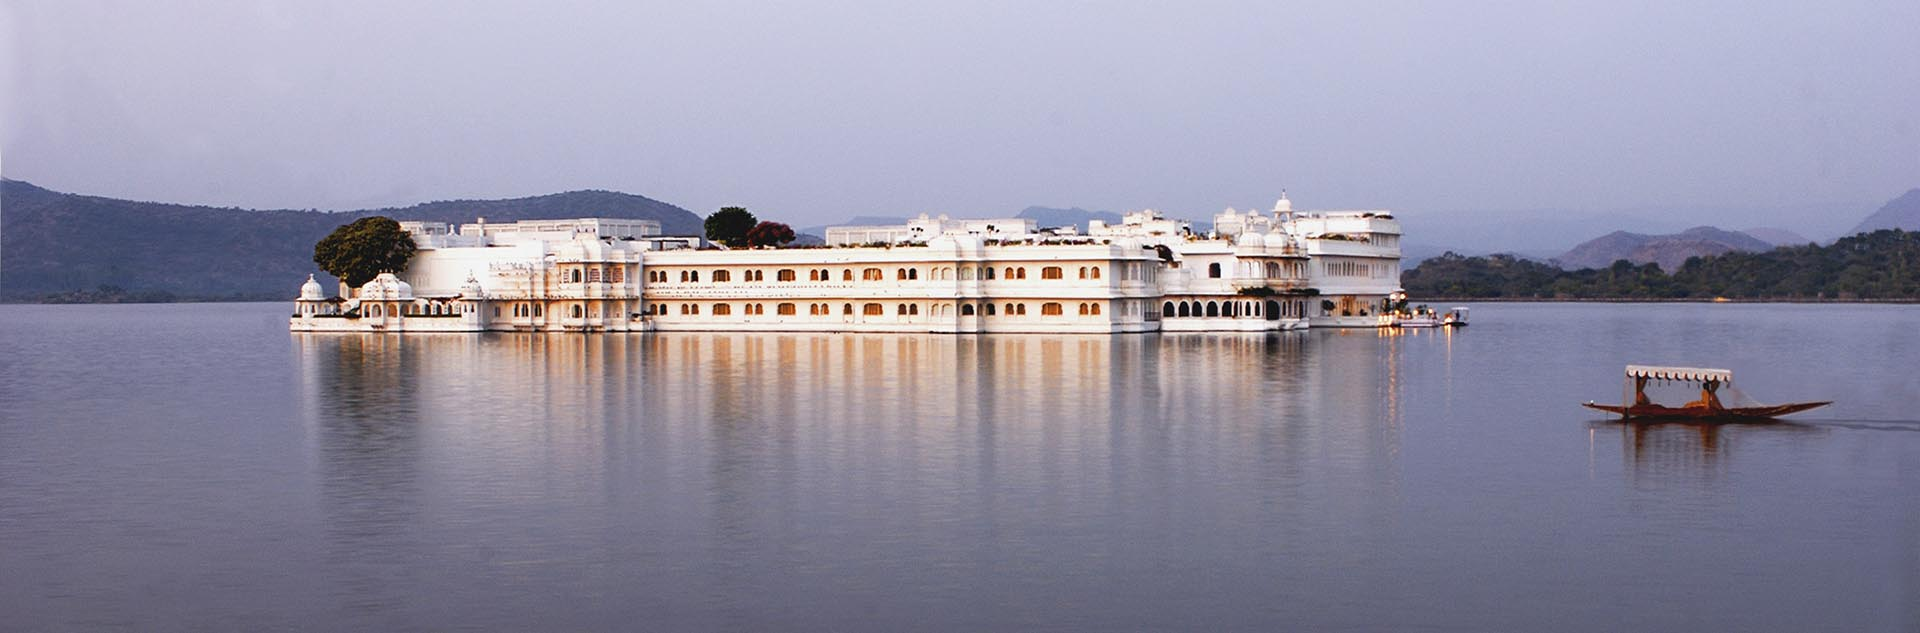 Lake-Palace-udaipur.jpg